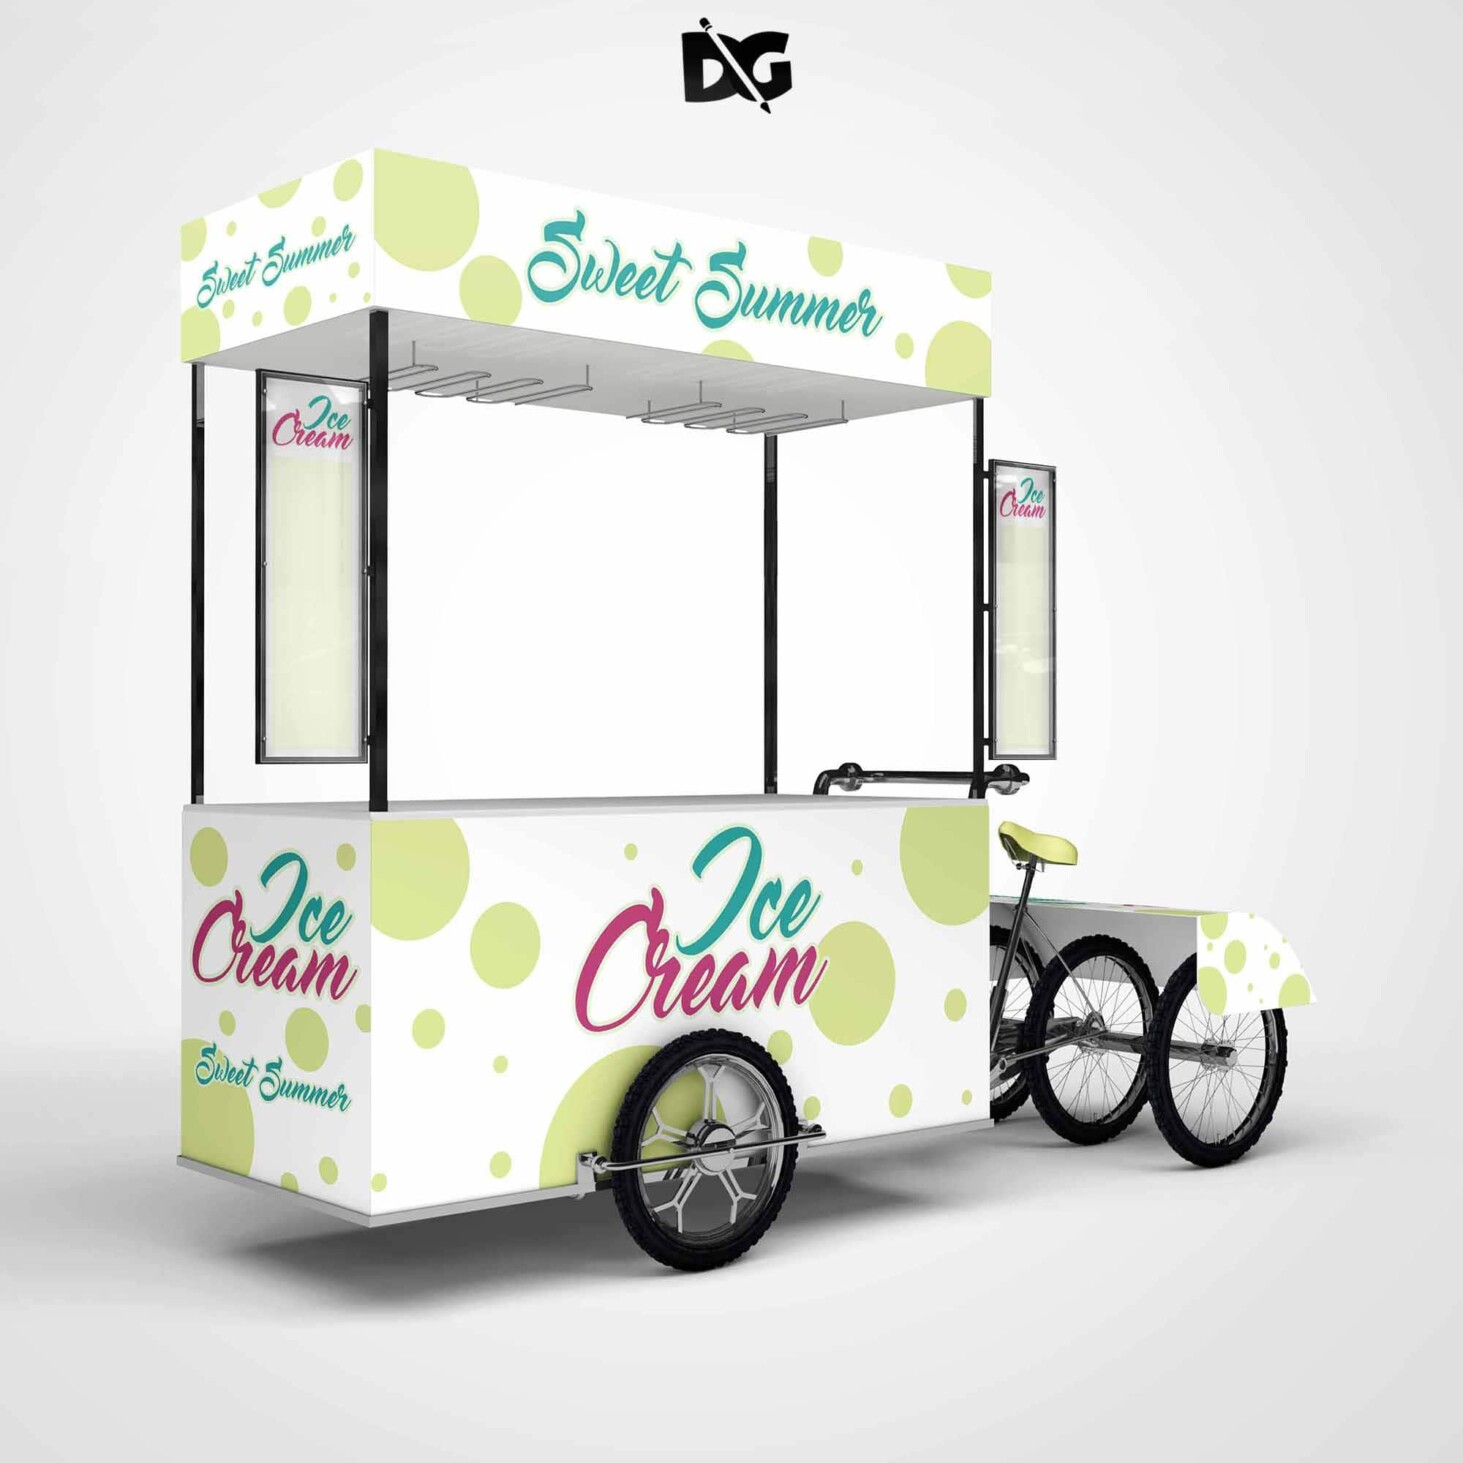 Icecream Booky Design Mockups